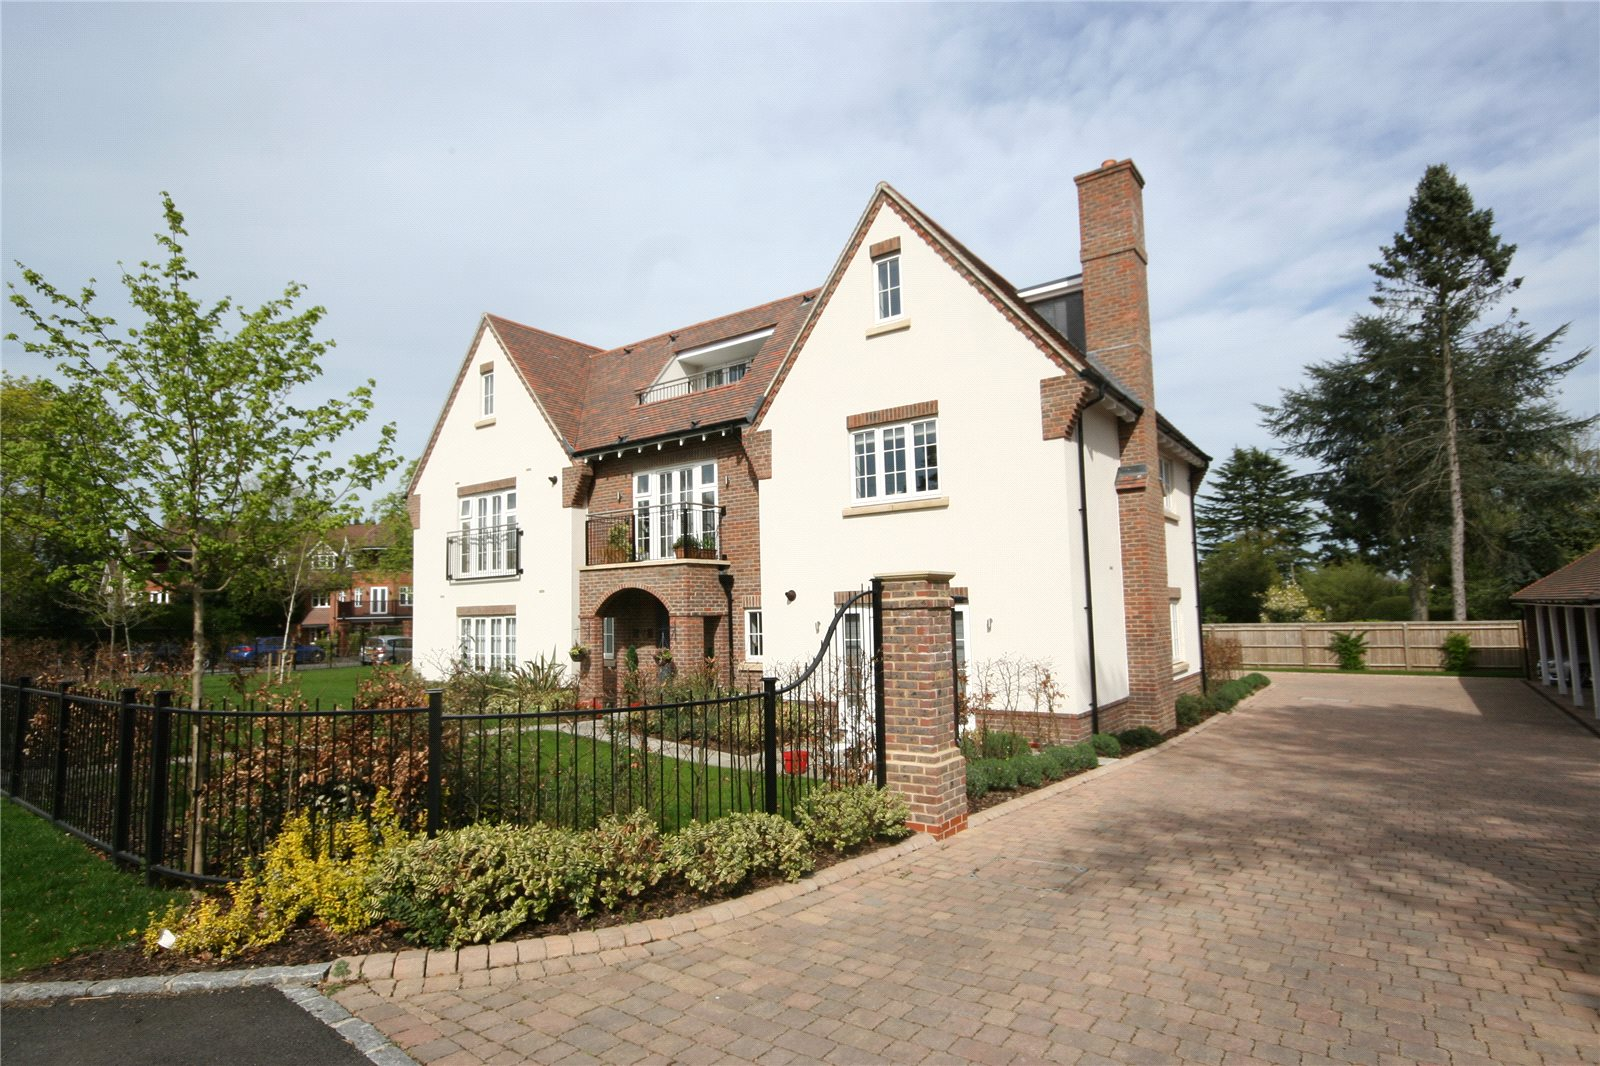 集合住宅 のために 売買 アット Aspin Lodge, 38 North Park, Gerrards Cross, Buckinghamshire, SL9 Gerrards Cross, イギリス